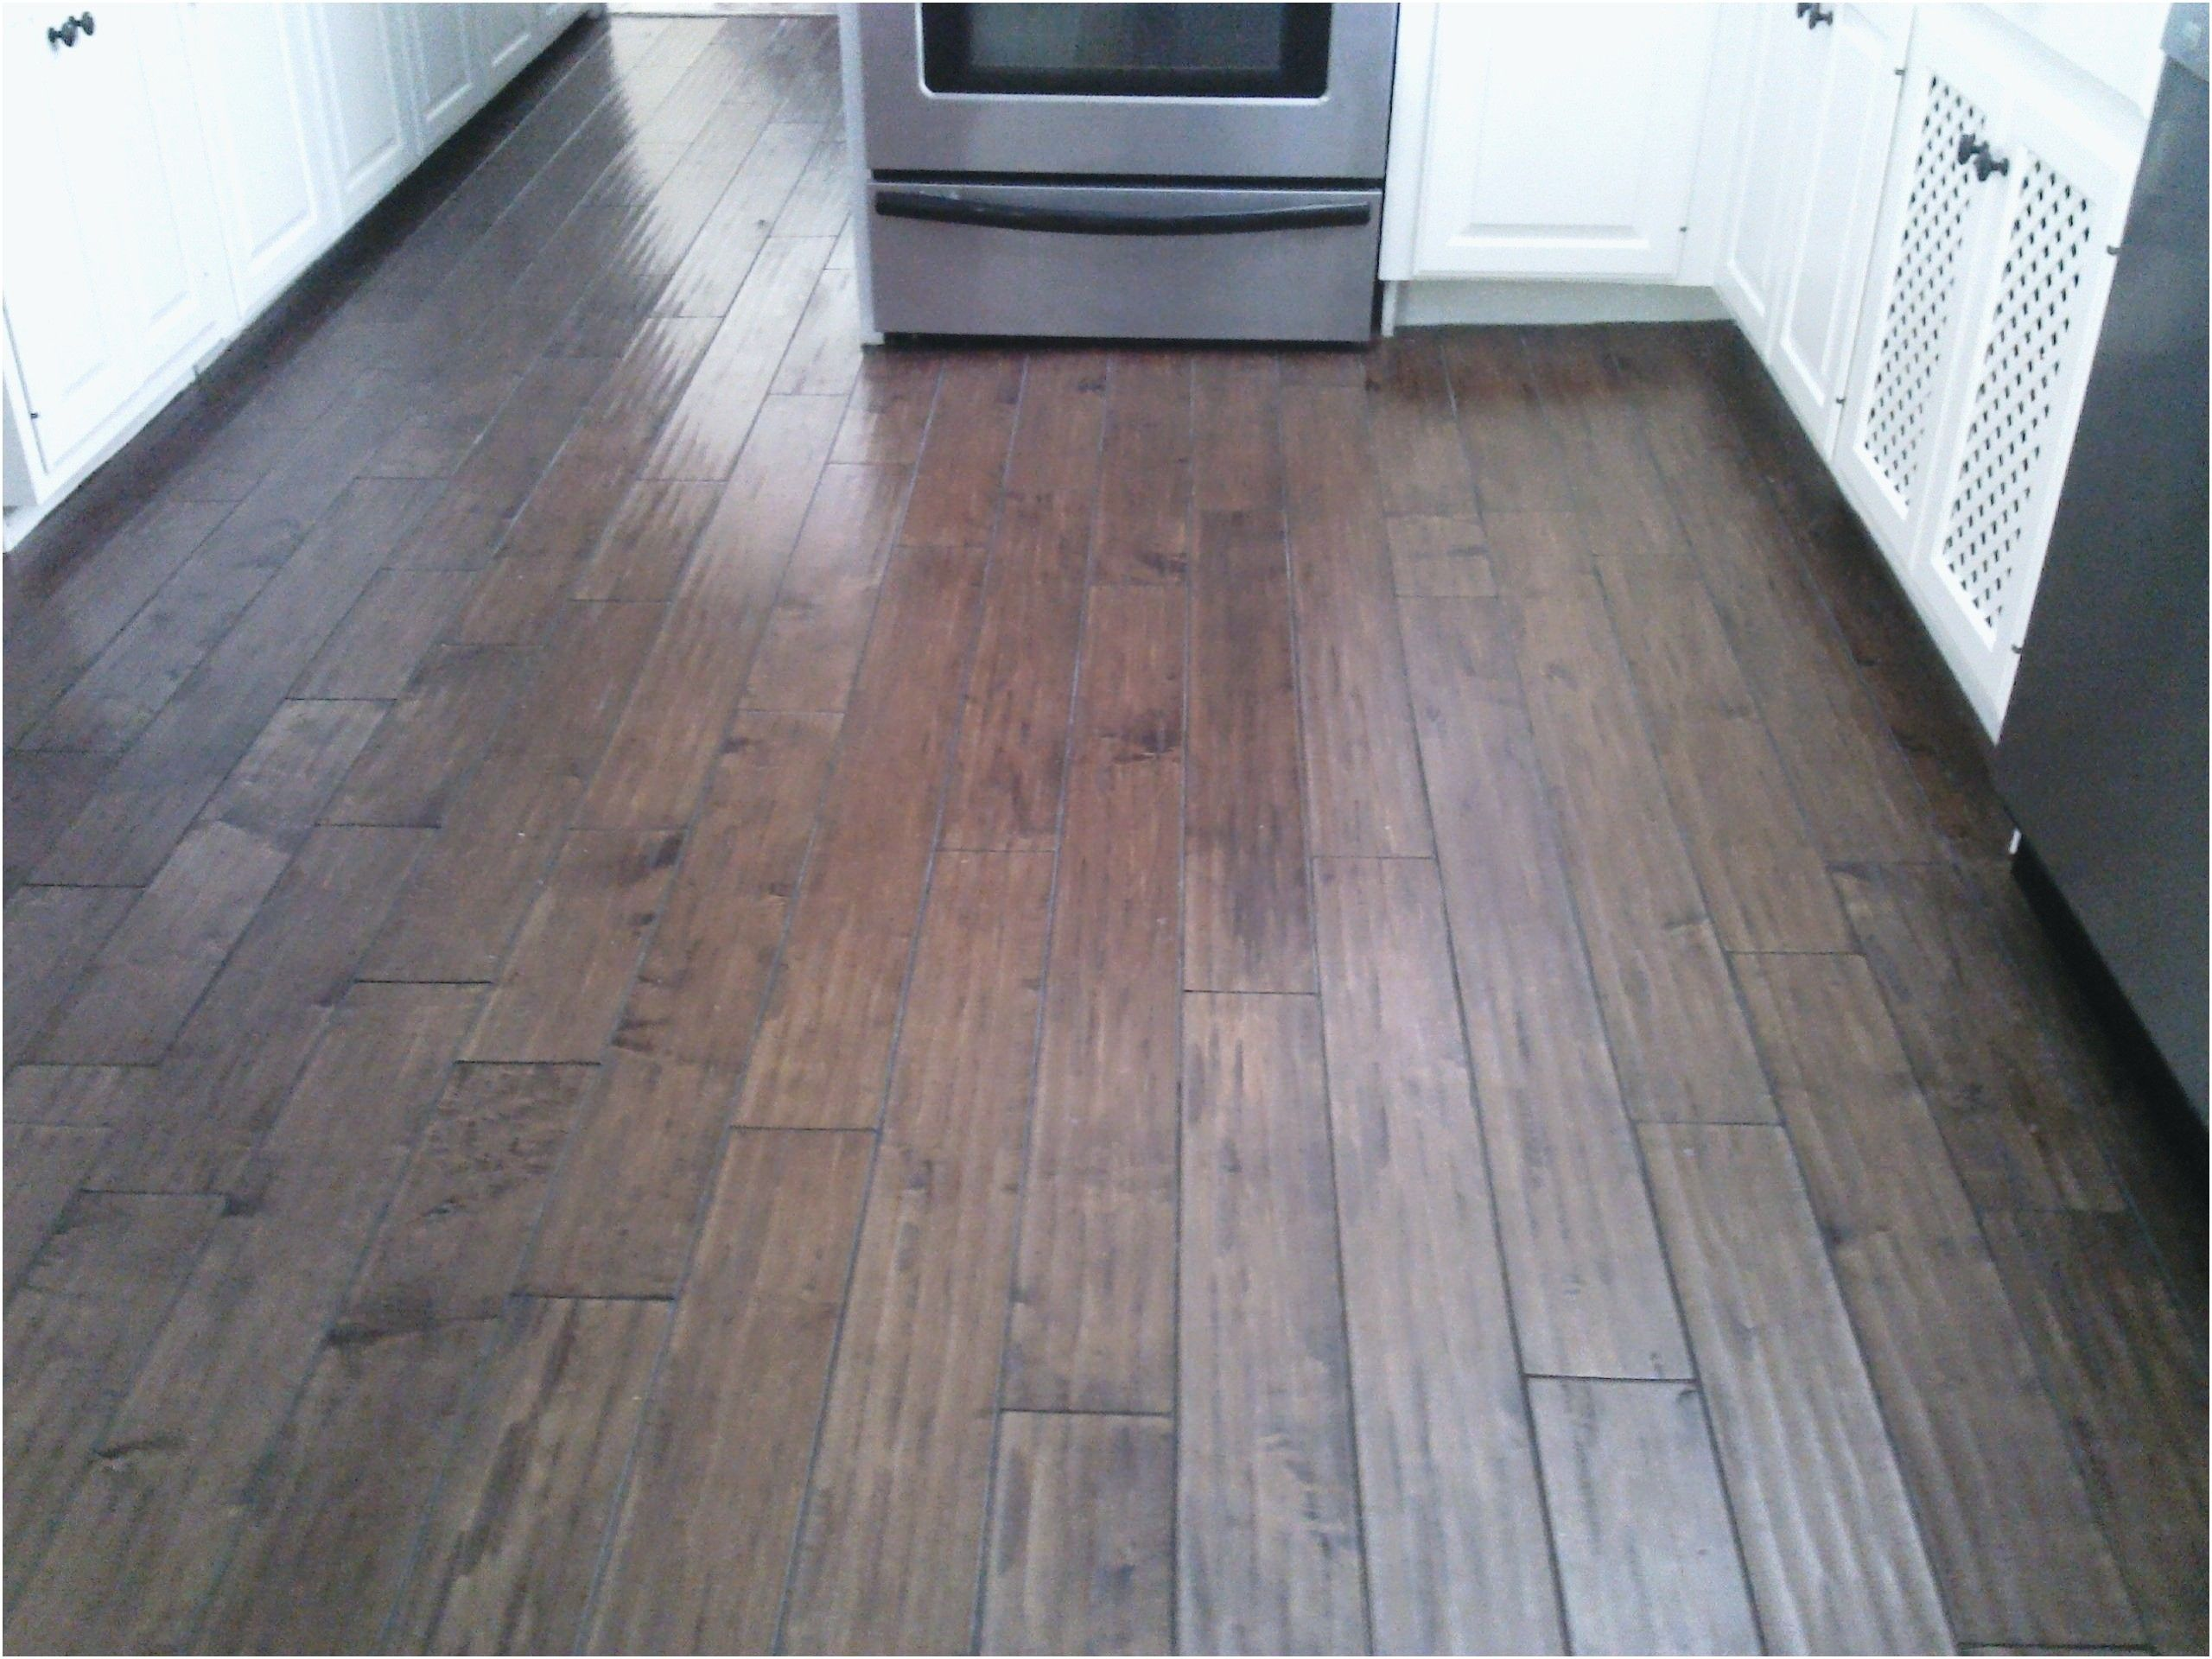 Related image Vinyl wood flooring, Vinyl vs laminate